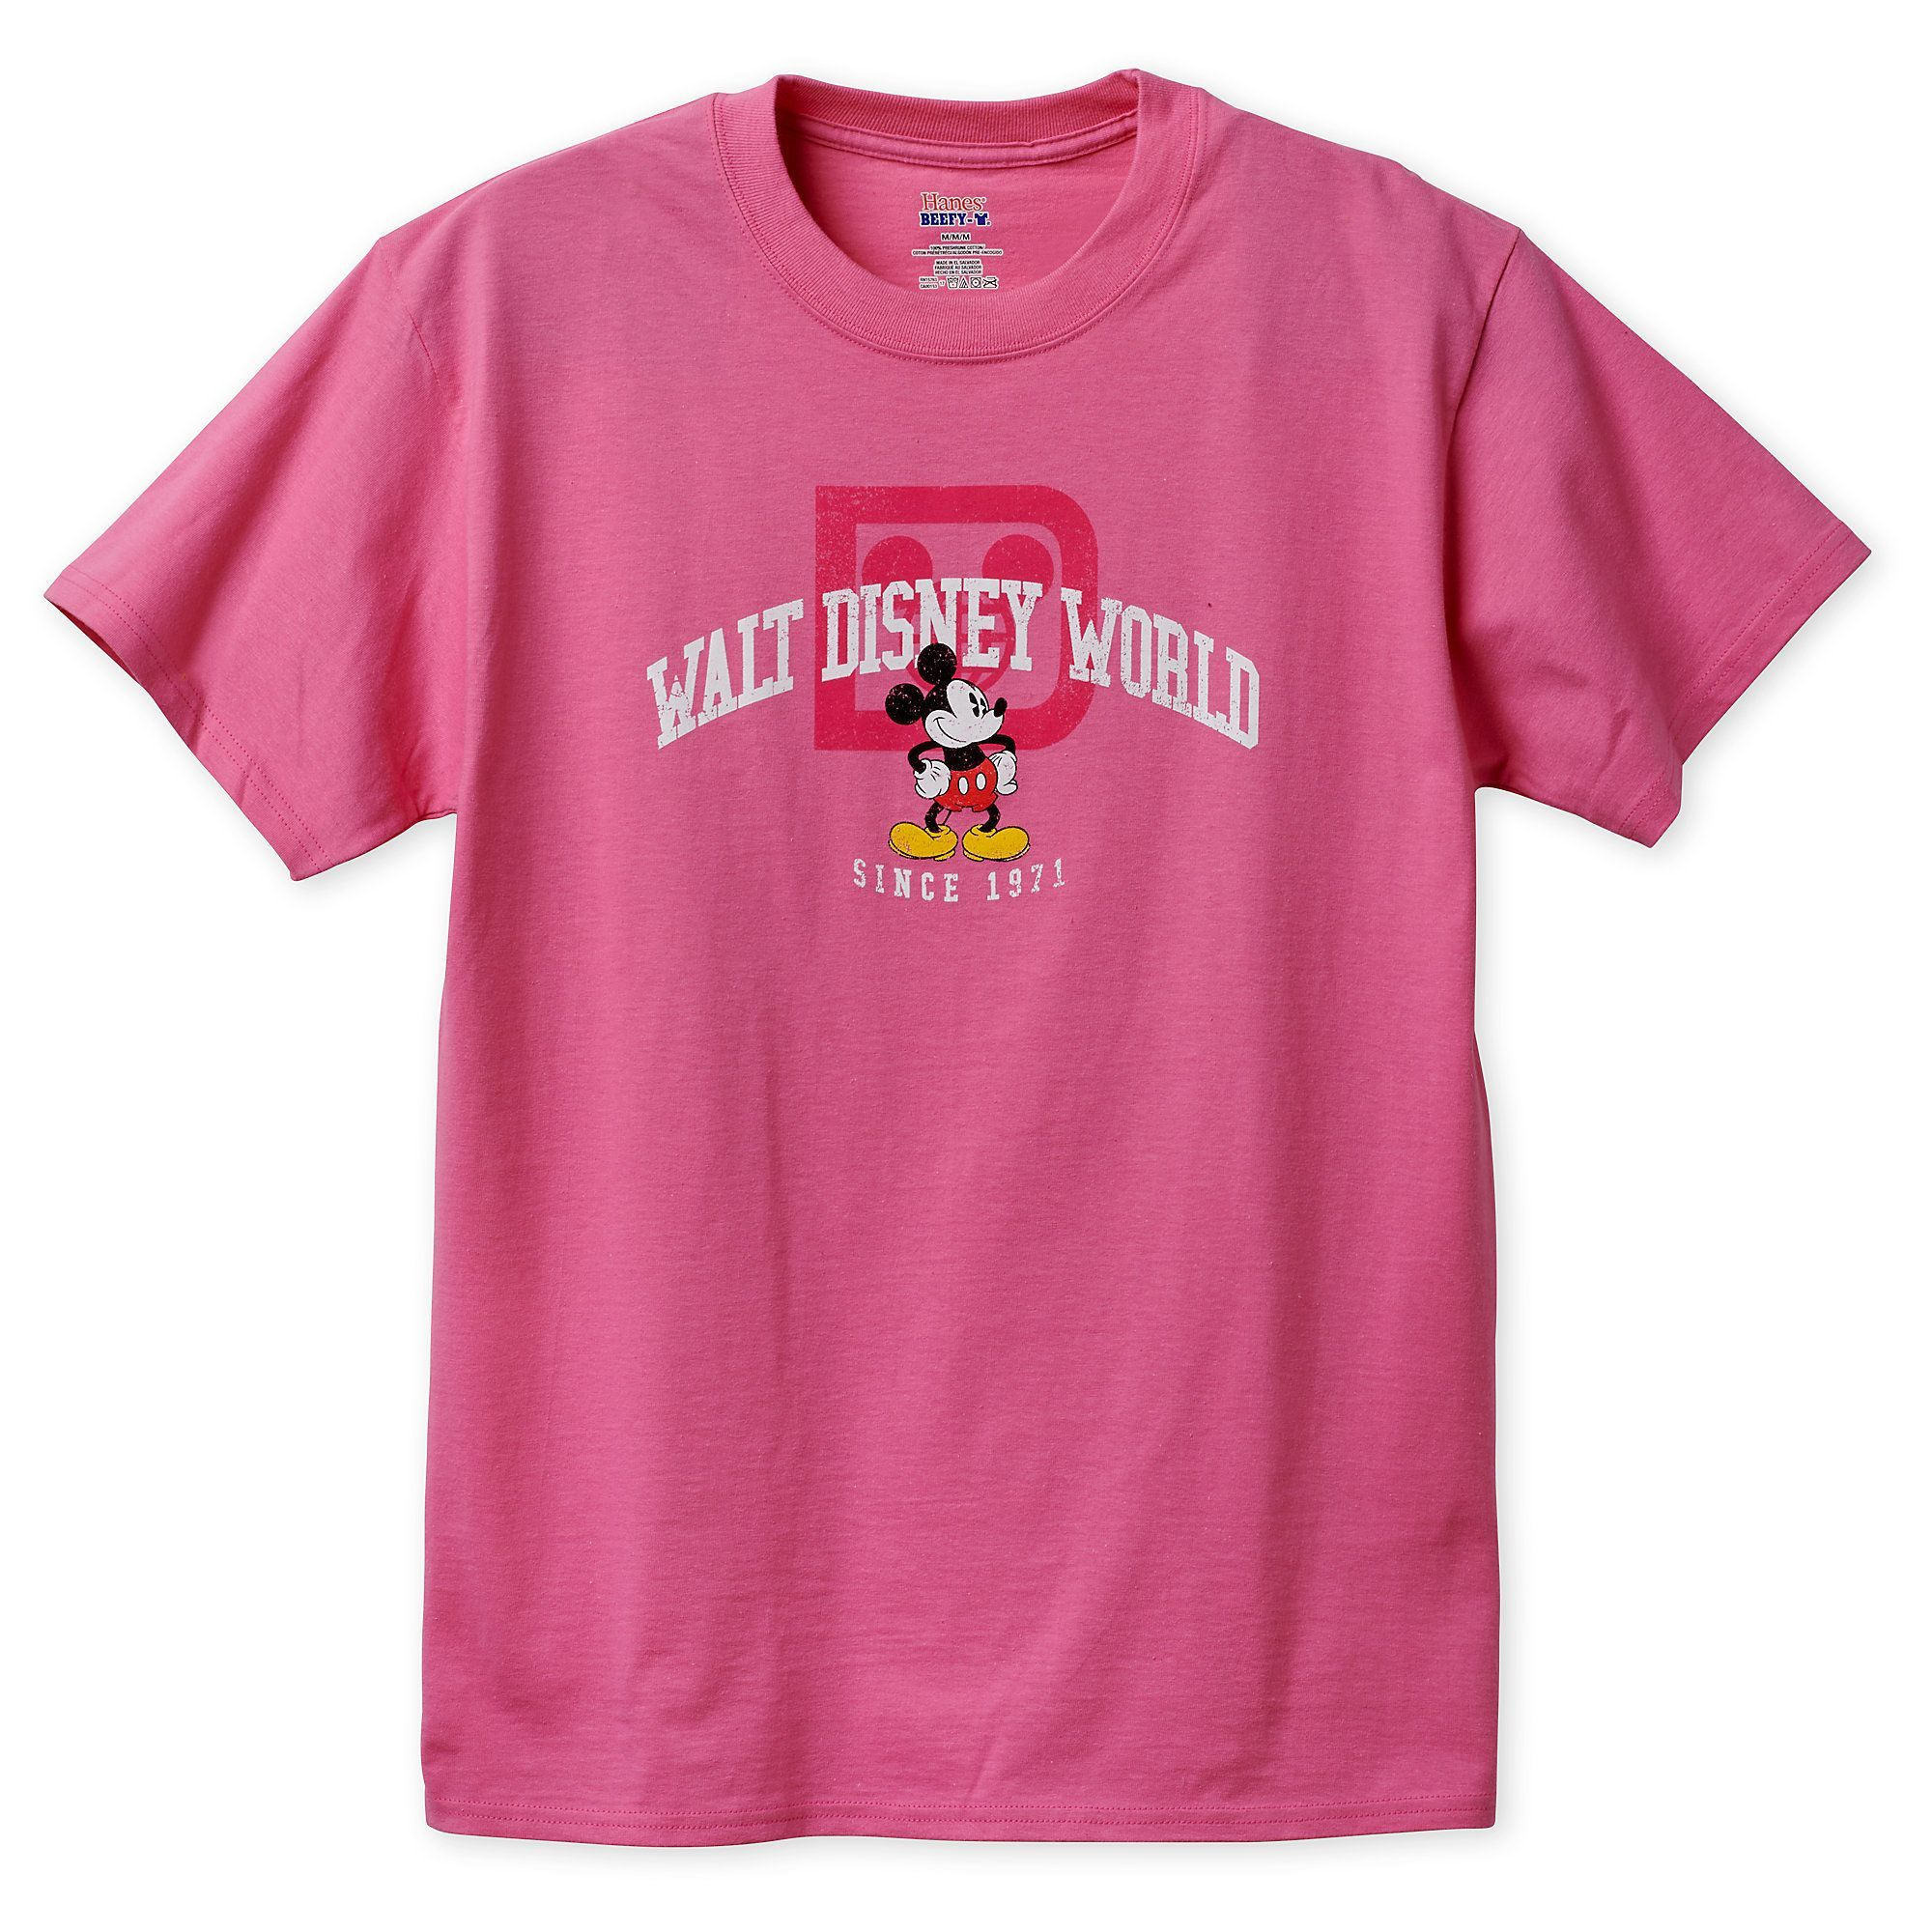 36724f3b Product Image of Mickey Mouse T-Shirt for Adults - Walt Disney World - Pink  # 1